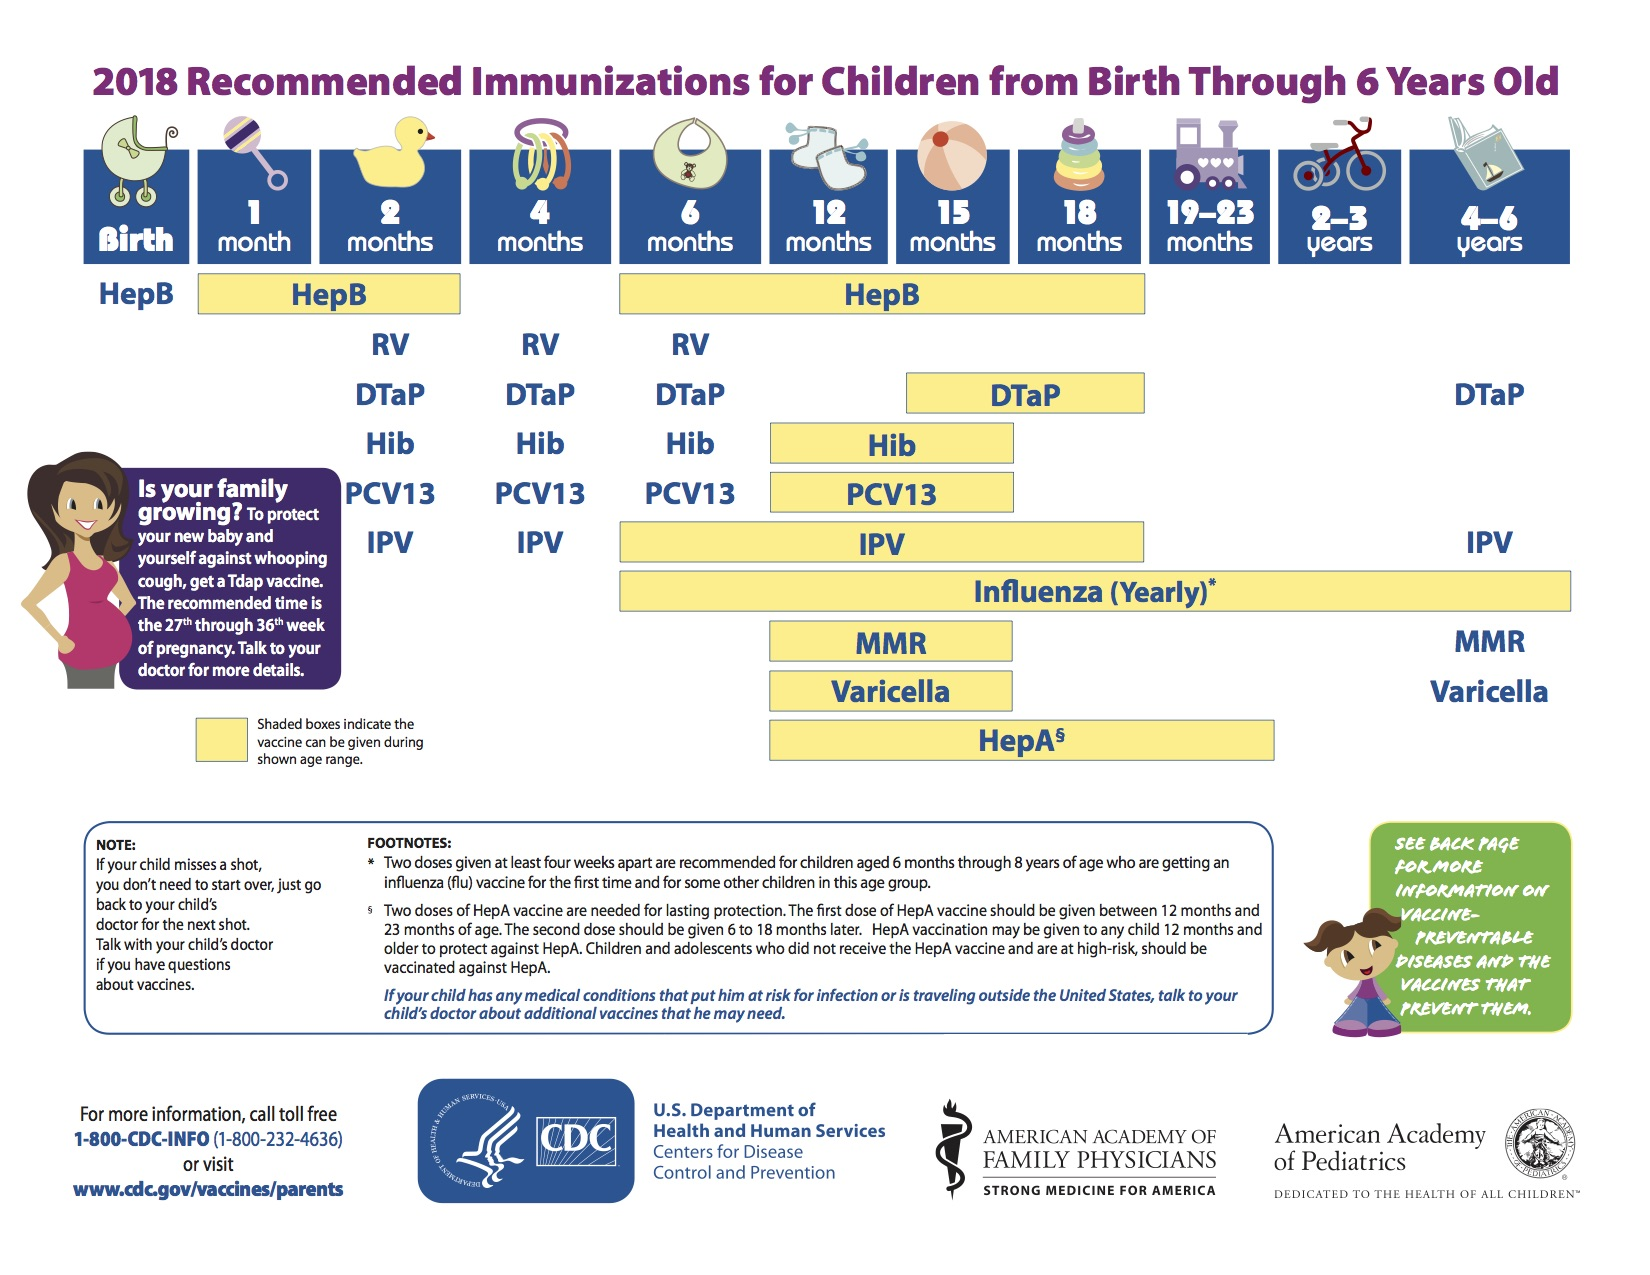 What Are the Changes in the 2018 Immunization Schedules